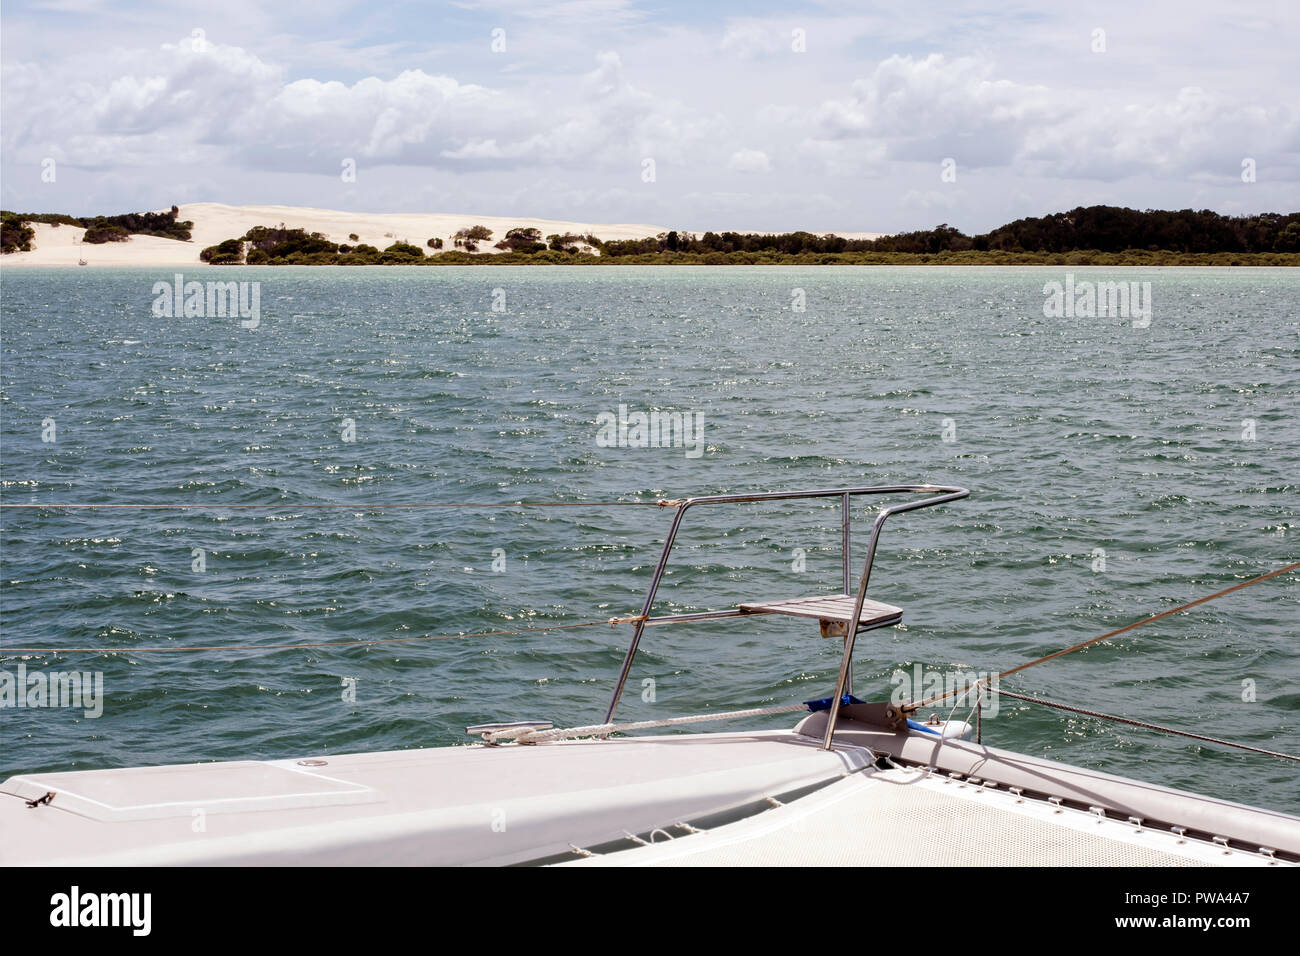 Sand dunes on Moreton Island, Queensland, Australia viewed with pulpit seat of approaching catamaran in  foreground. 'Best seat in the house!' - Stock Image